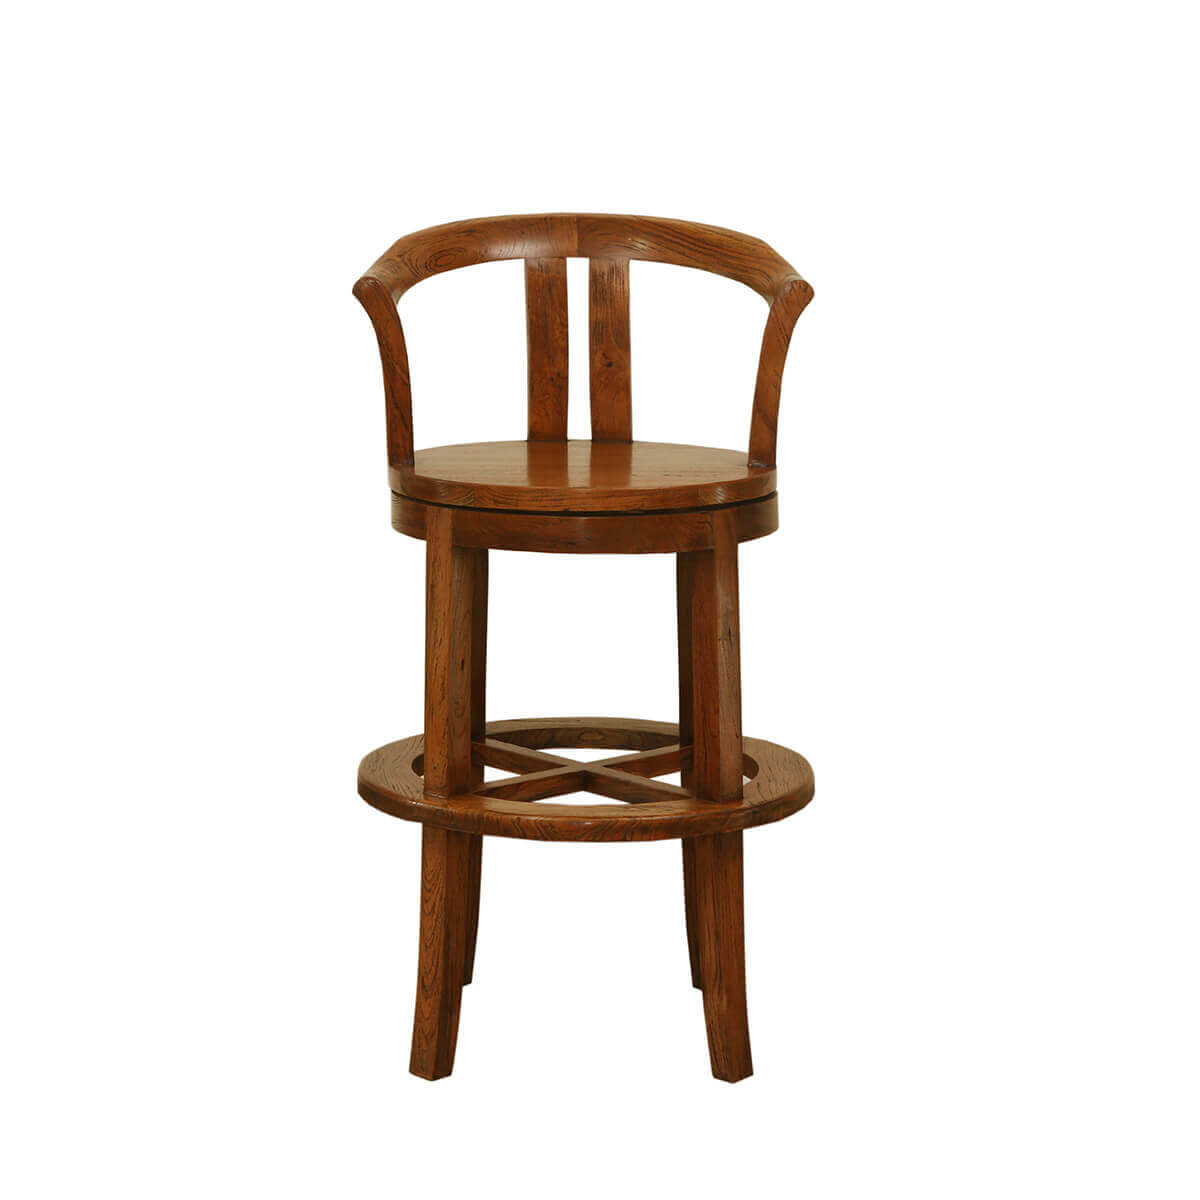 Bartow Vintage Style Teak Wood Bar Chair